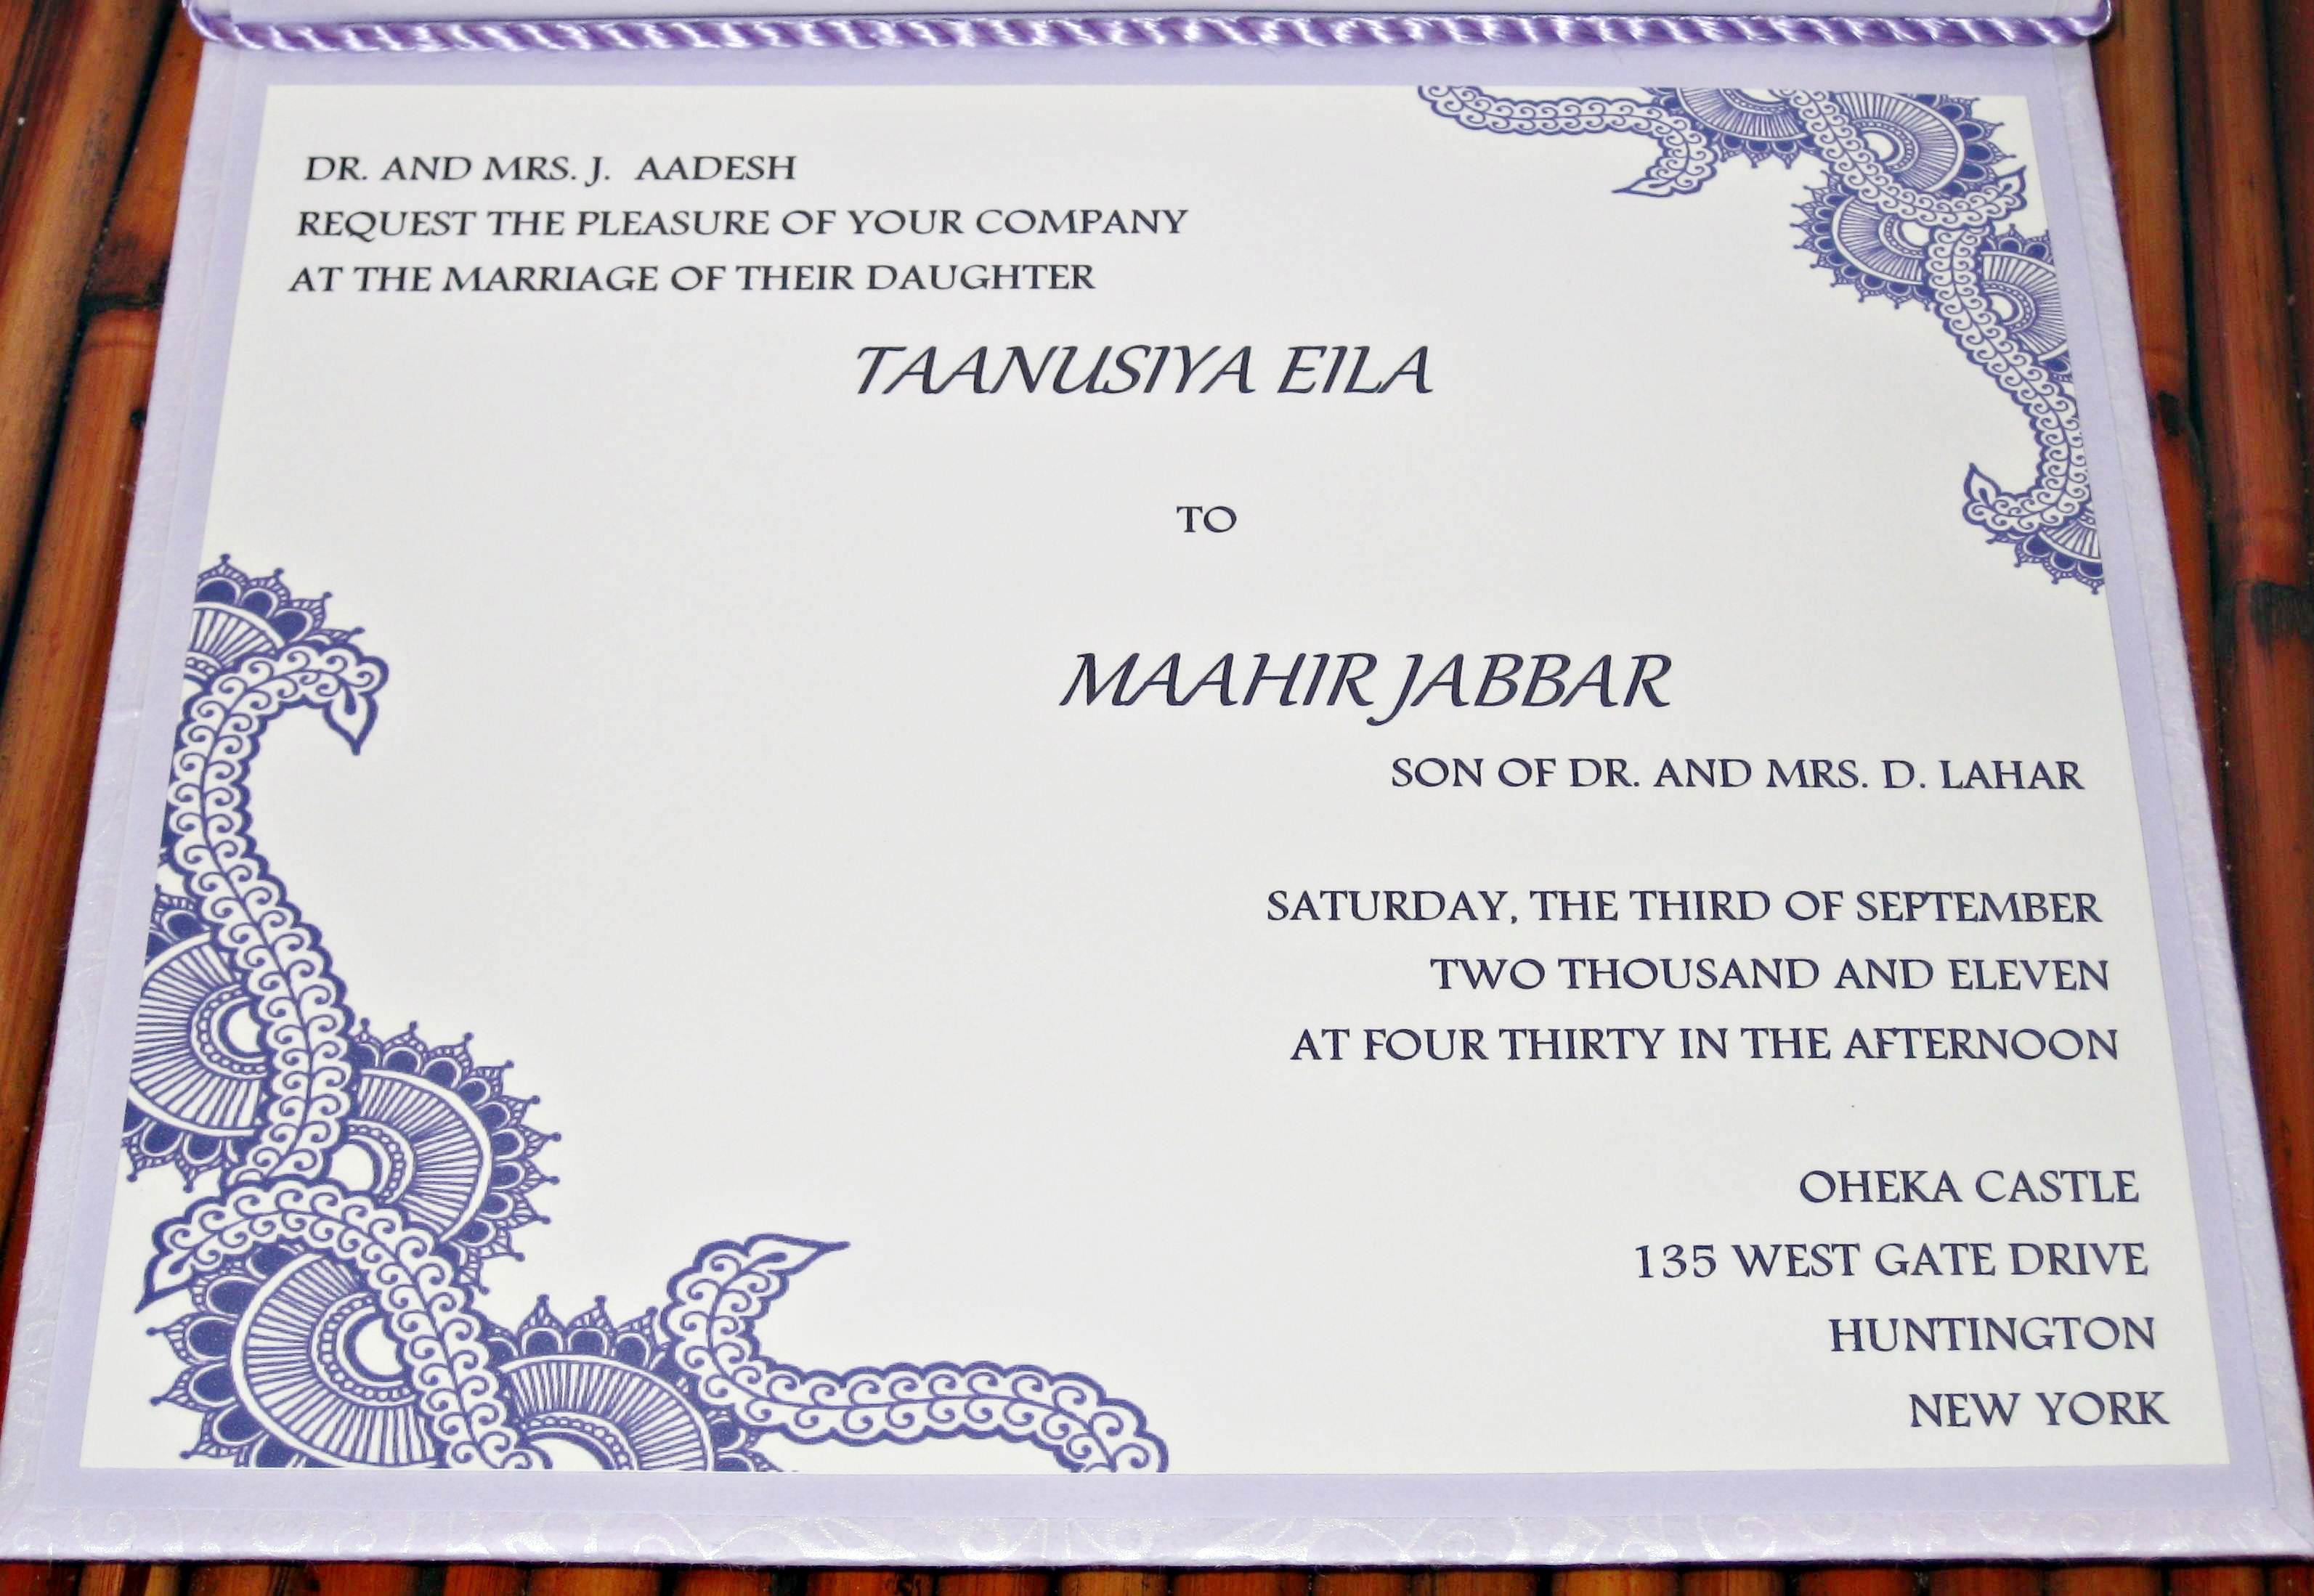 Annemarie prinsloo creations wedding invitation pictures purple wedding invite purple wedding invite m4hsunfo